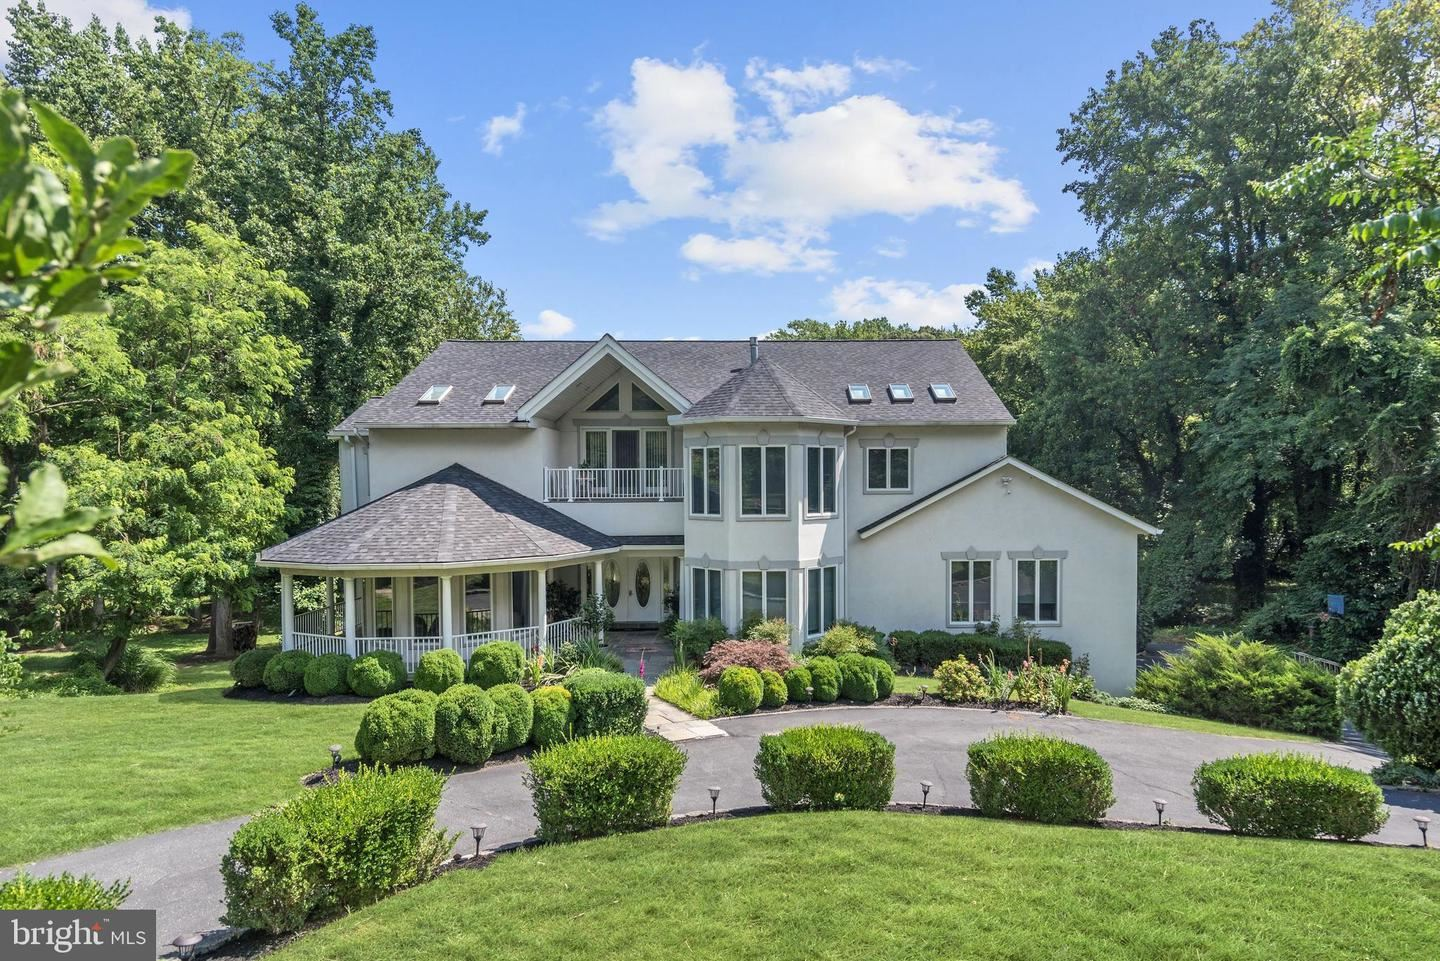 1199 ASQUITHPINES PL, Arnold, MD 21012 - MLS#: MDAA454578